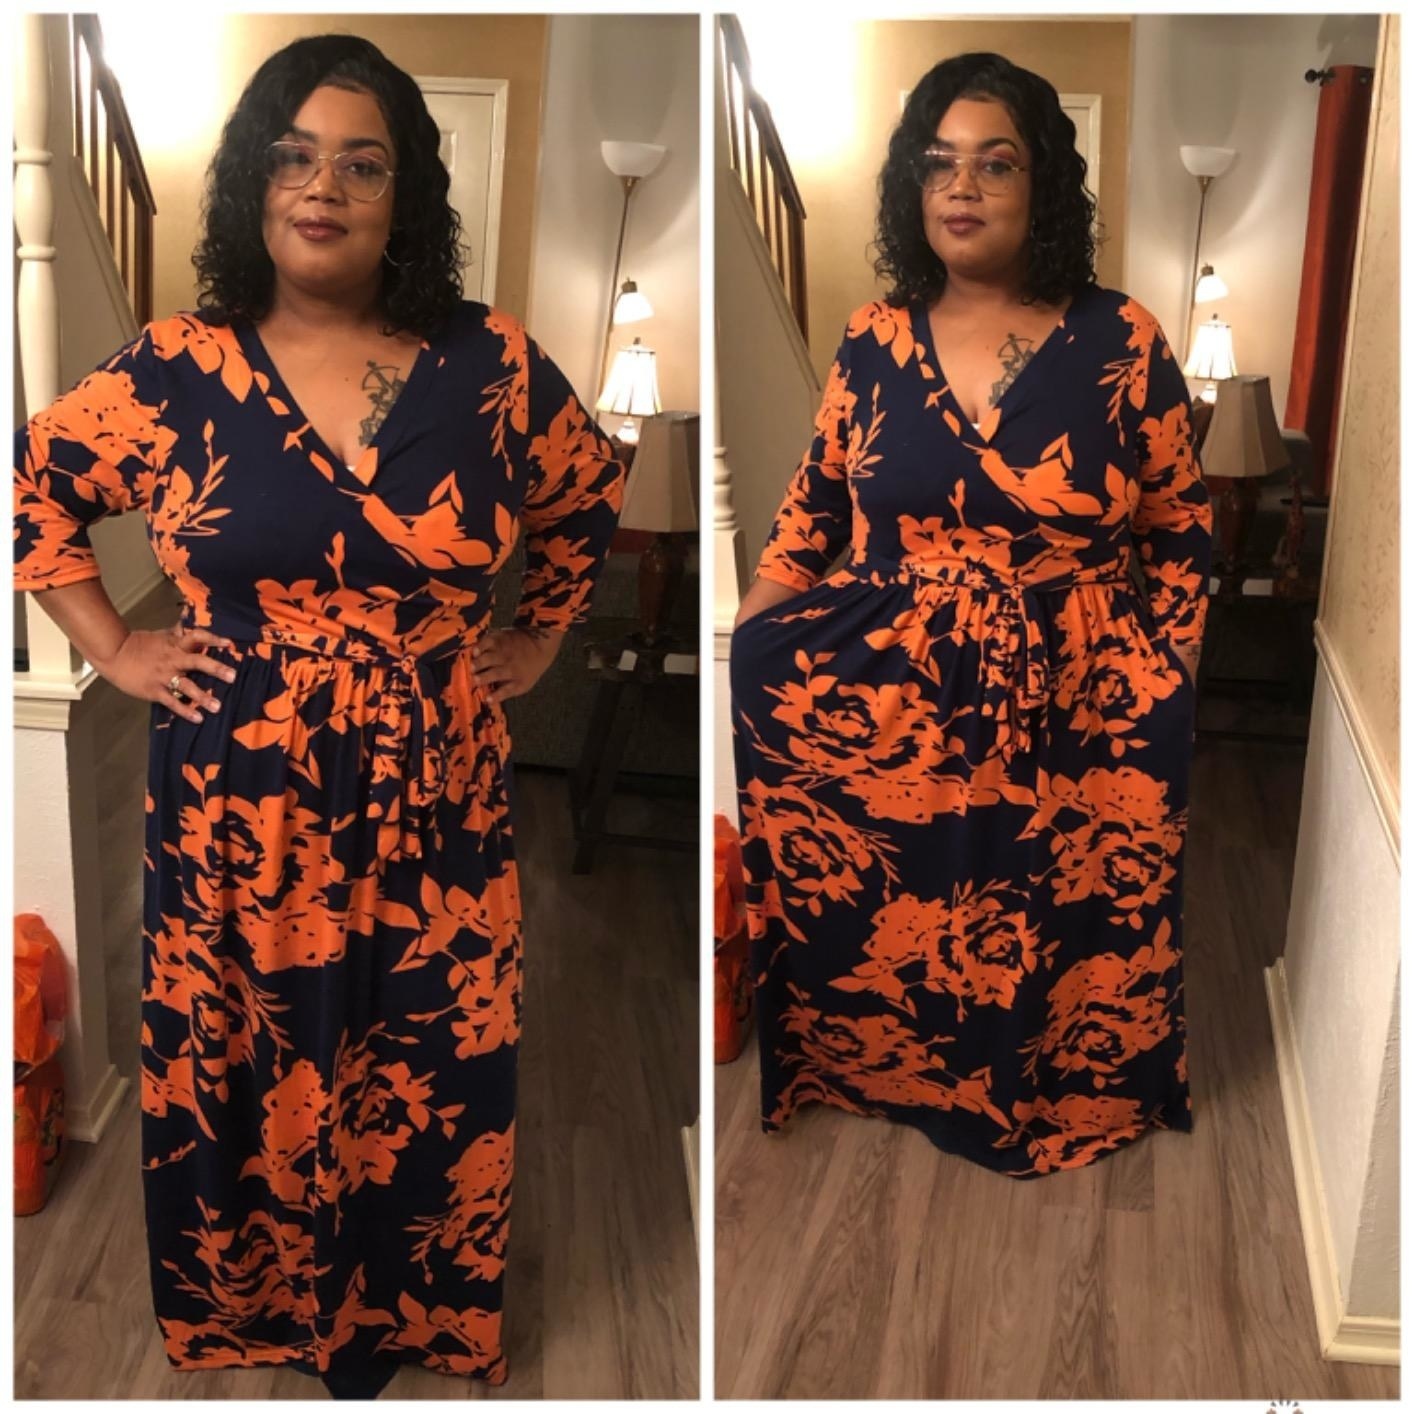 Reviewer wearing the orange printfloral print casual party dress